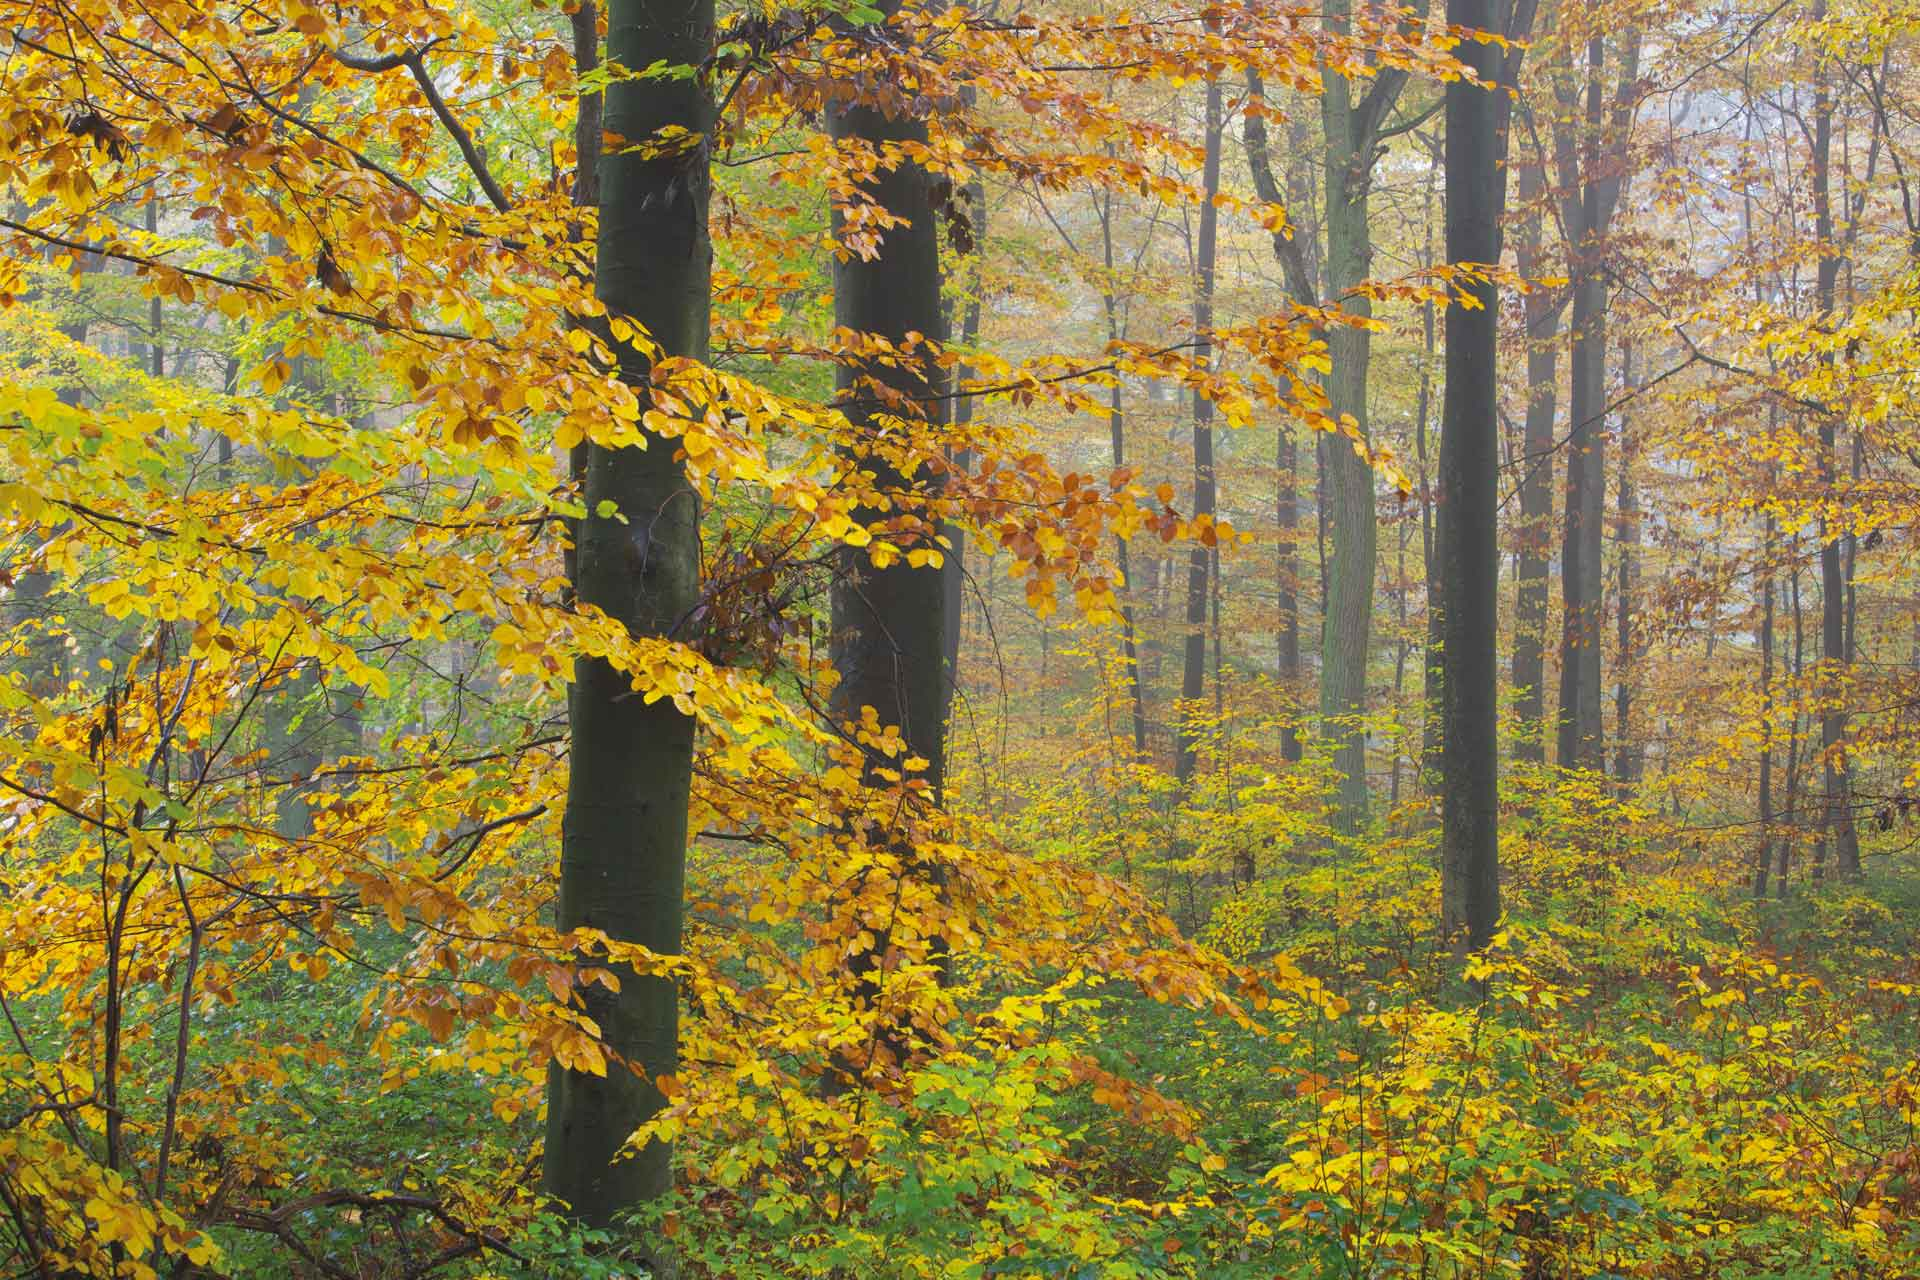 Beech forest in autumn.